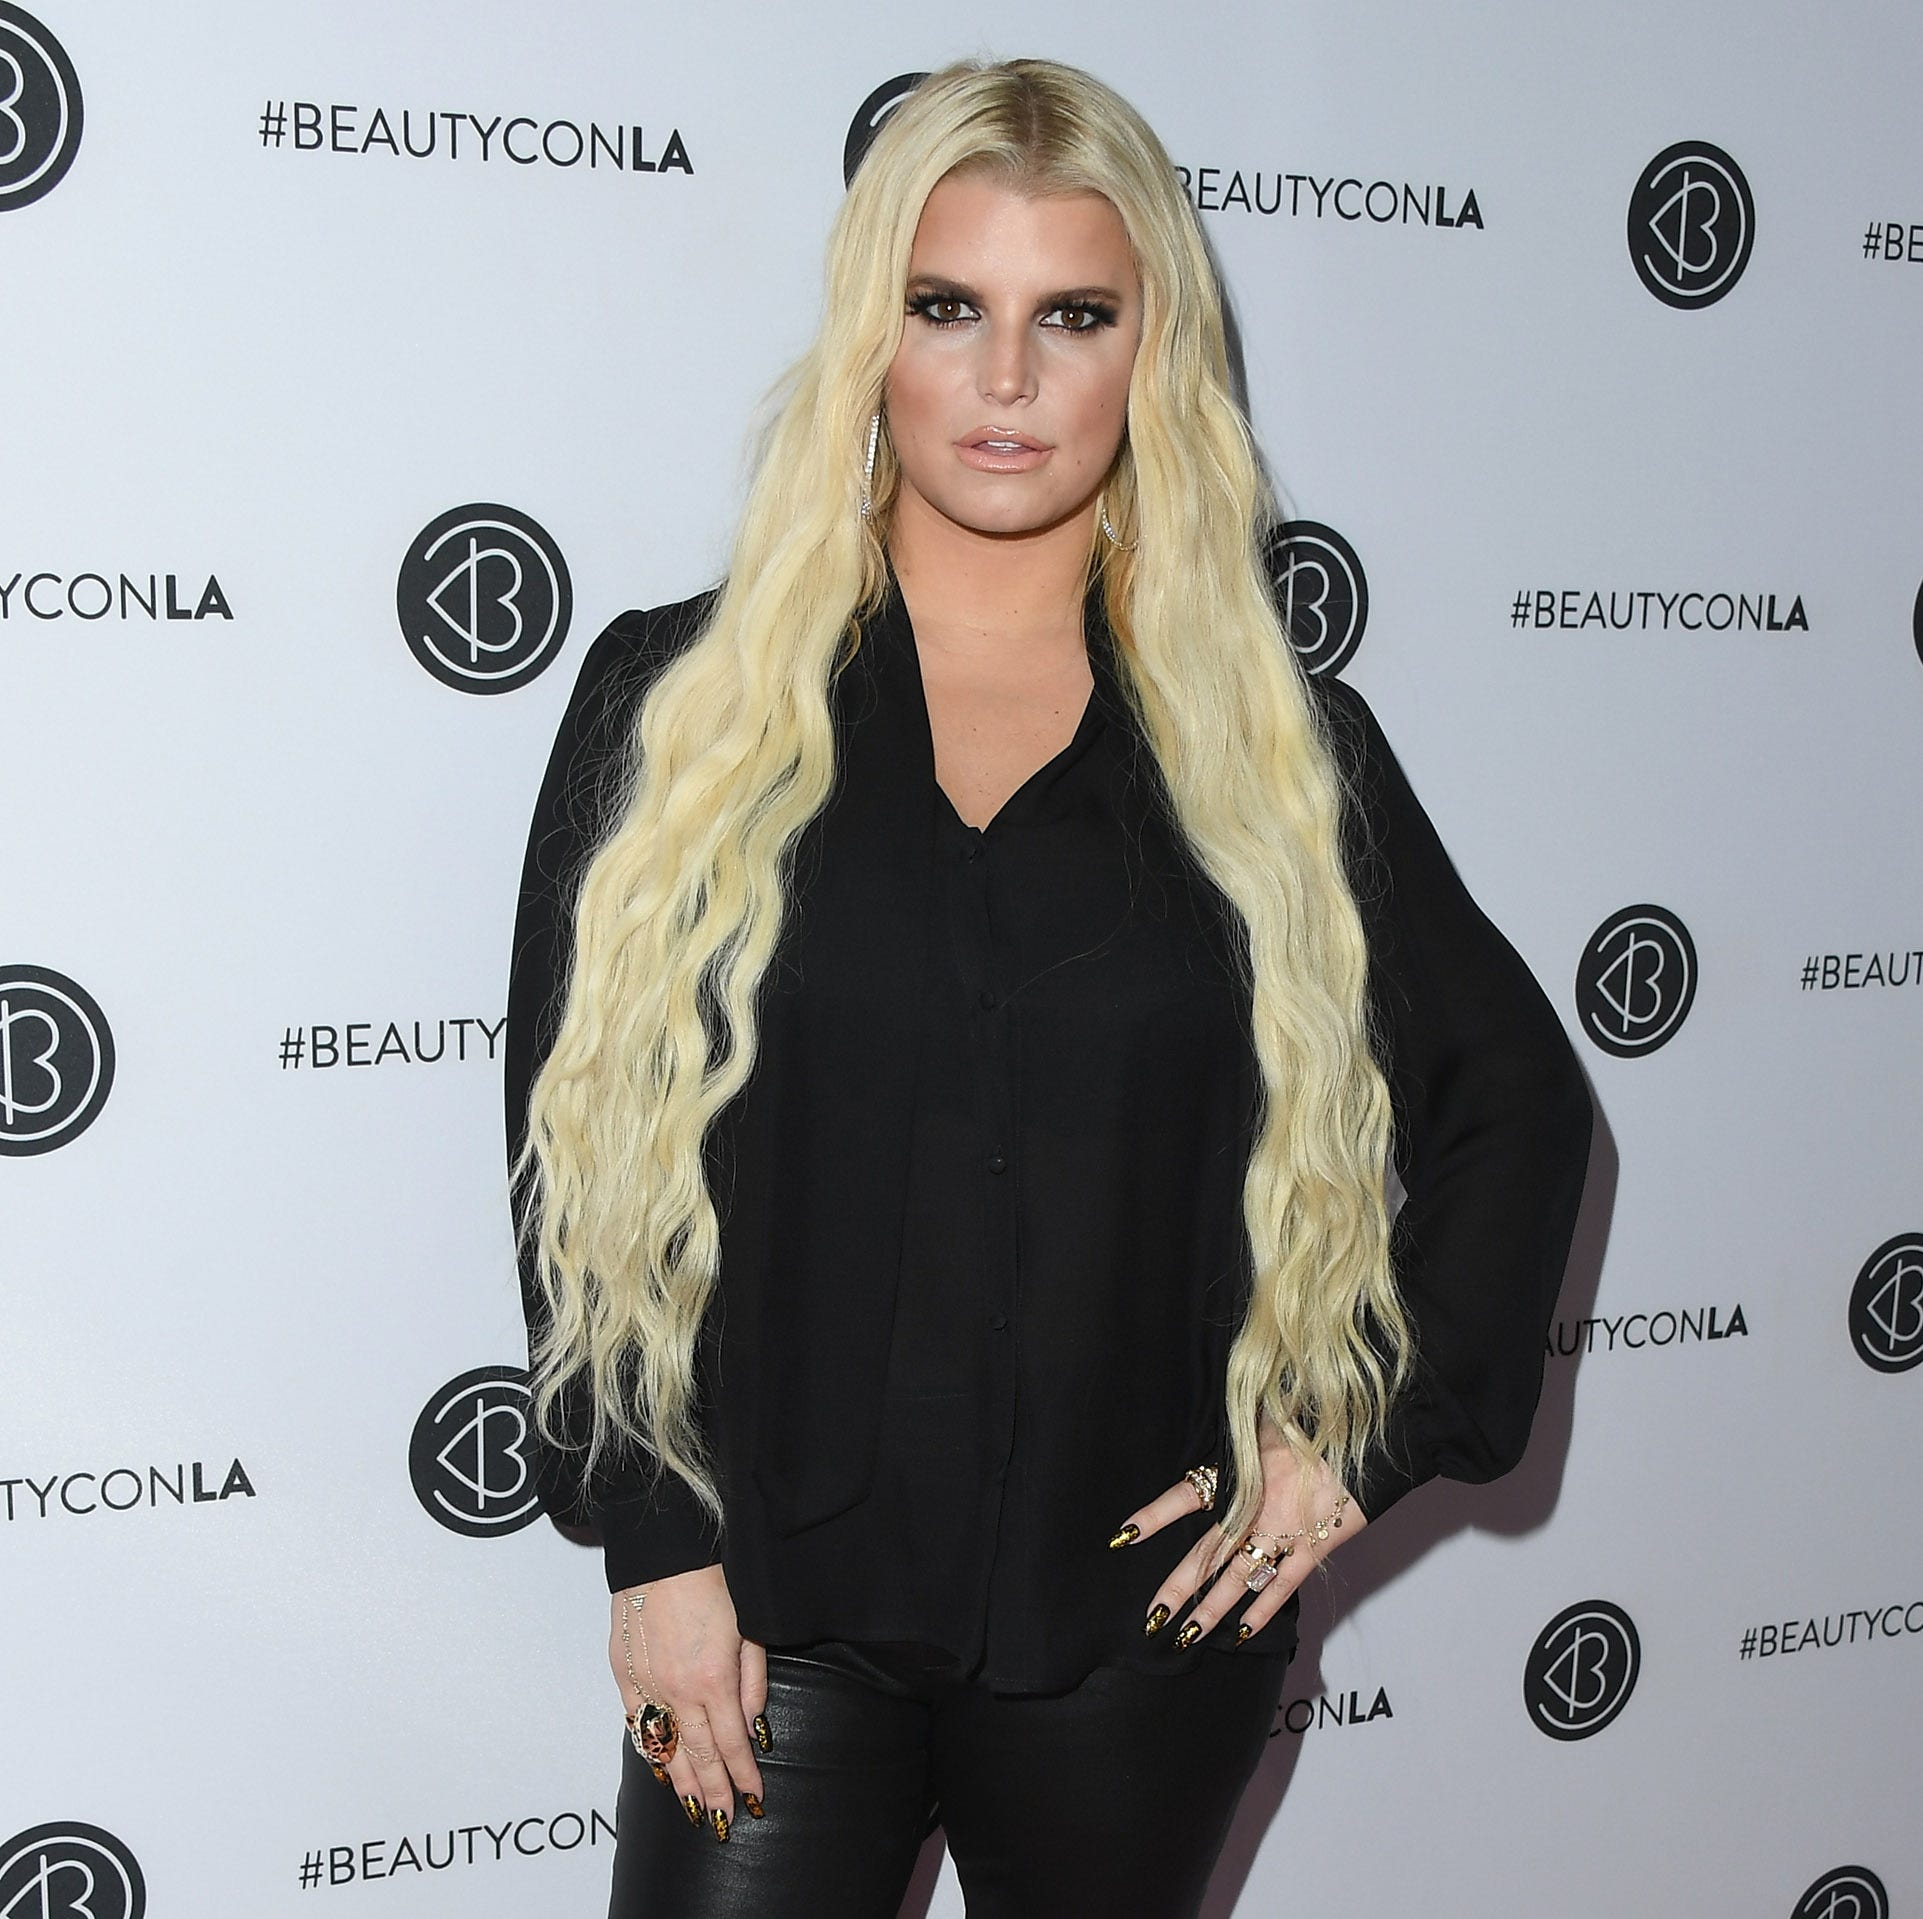 Jessica Simpson attends Beautycon Festival LA 2018 at Los Angeles Convention Center on July 14, 2018 in Los Angeles, California.